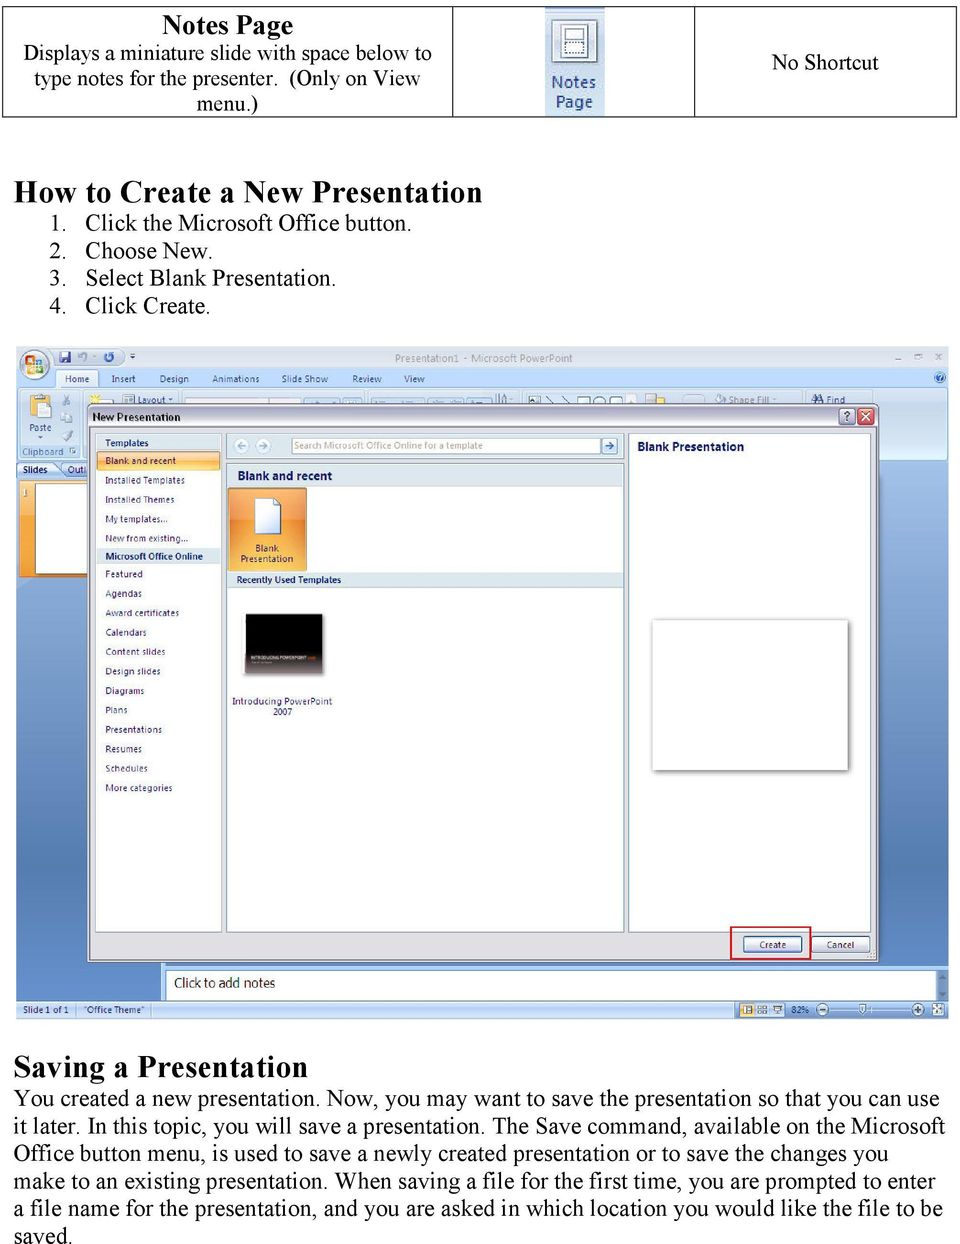 In this topic, you will save a presentation.